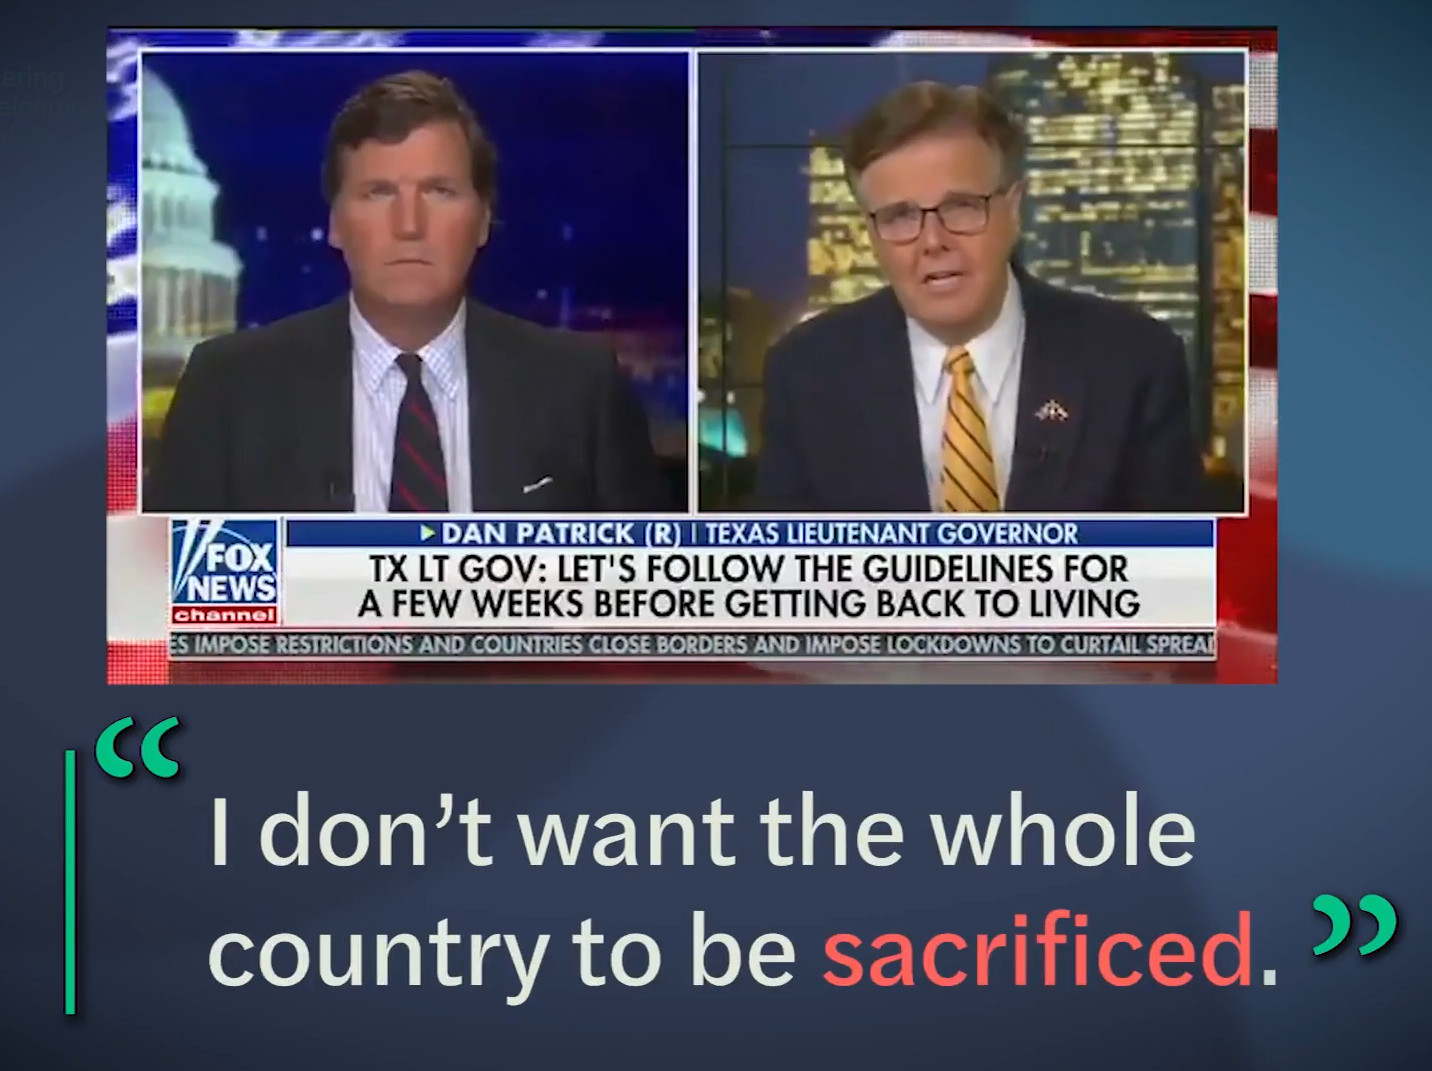 image grab showing tucker carlson and some guy in a split screen